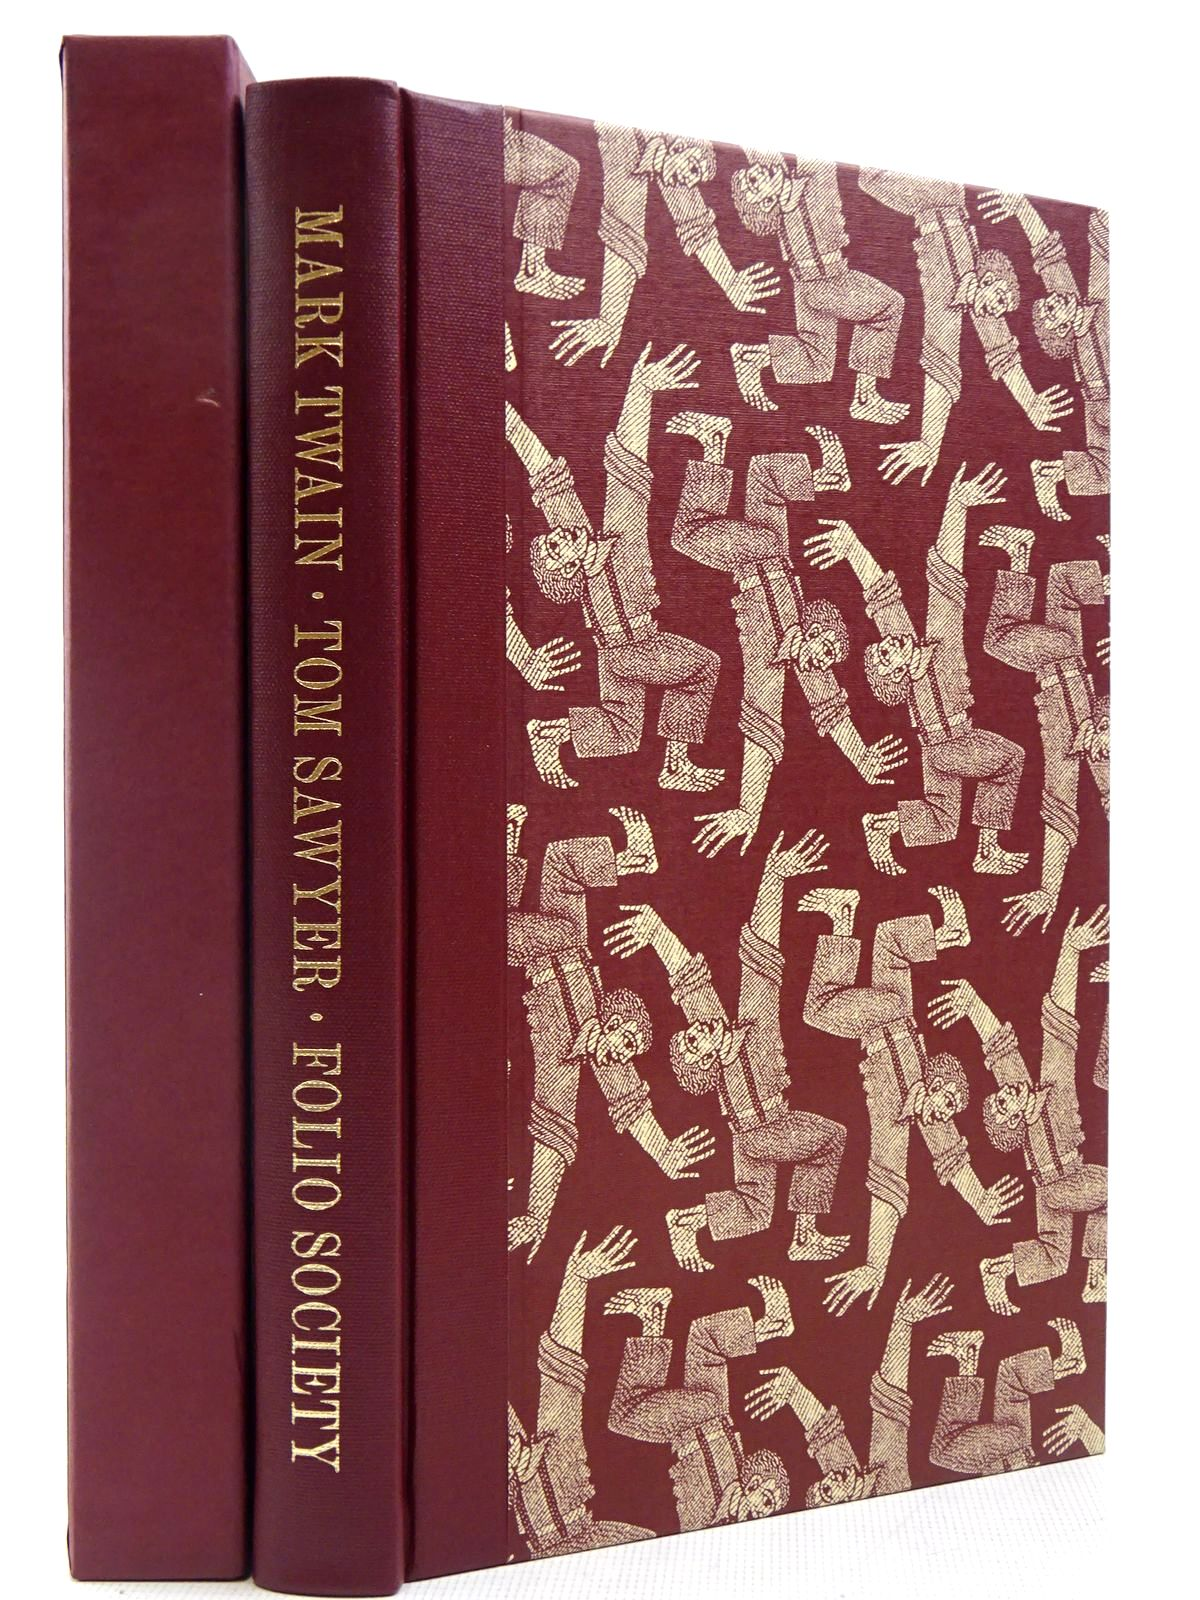 Photo of THE ADVENTURES OF TOM SAWYER written by Twain, Mark illustrated by Brockway, Harry published by Folio Society (STOCK CODE: 2129290)  for sale by Stella & Rose's Books